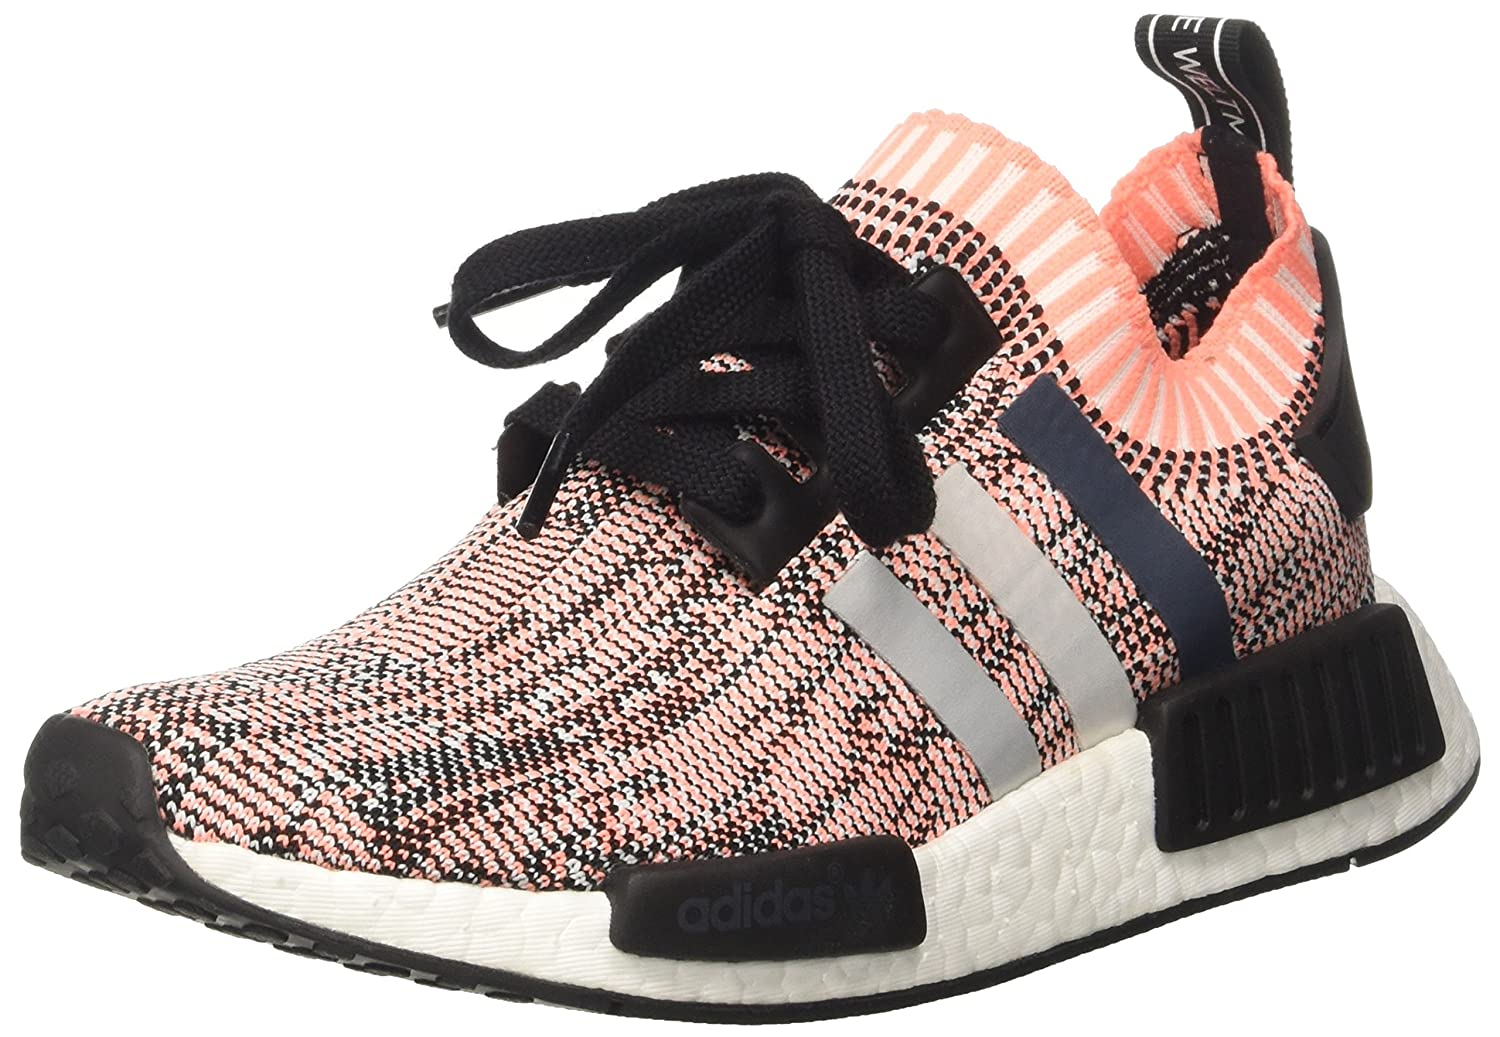 adidas Originals Women's NMD_r1 W Pk Sneaker B01N13I2BF 10 W US|Black Sunglow